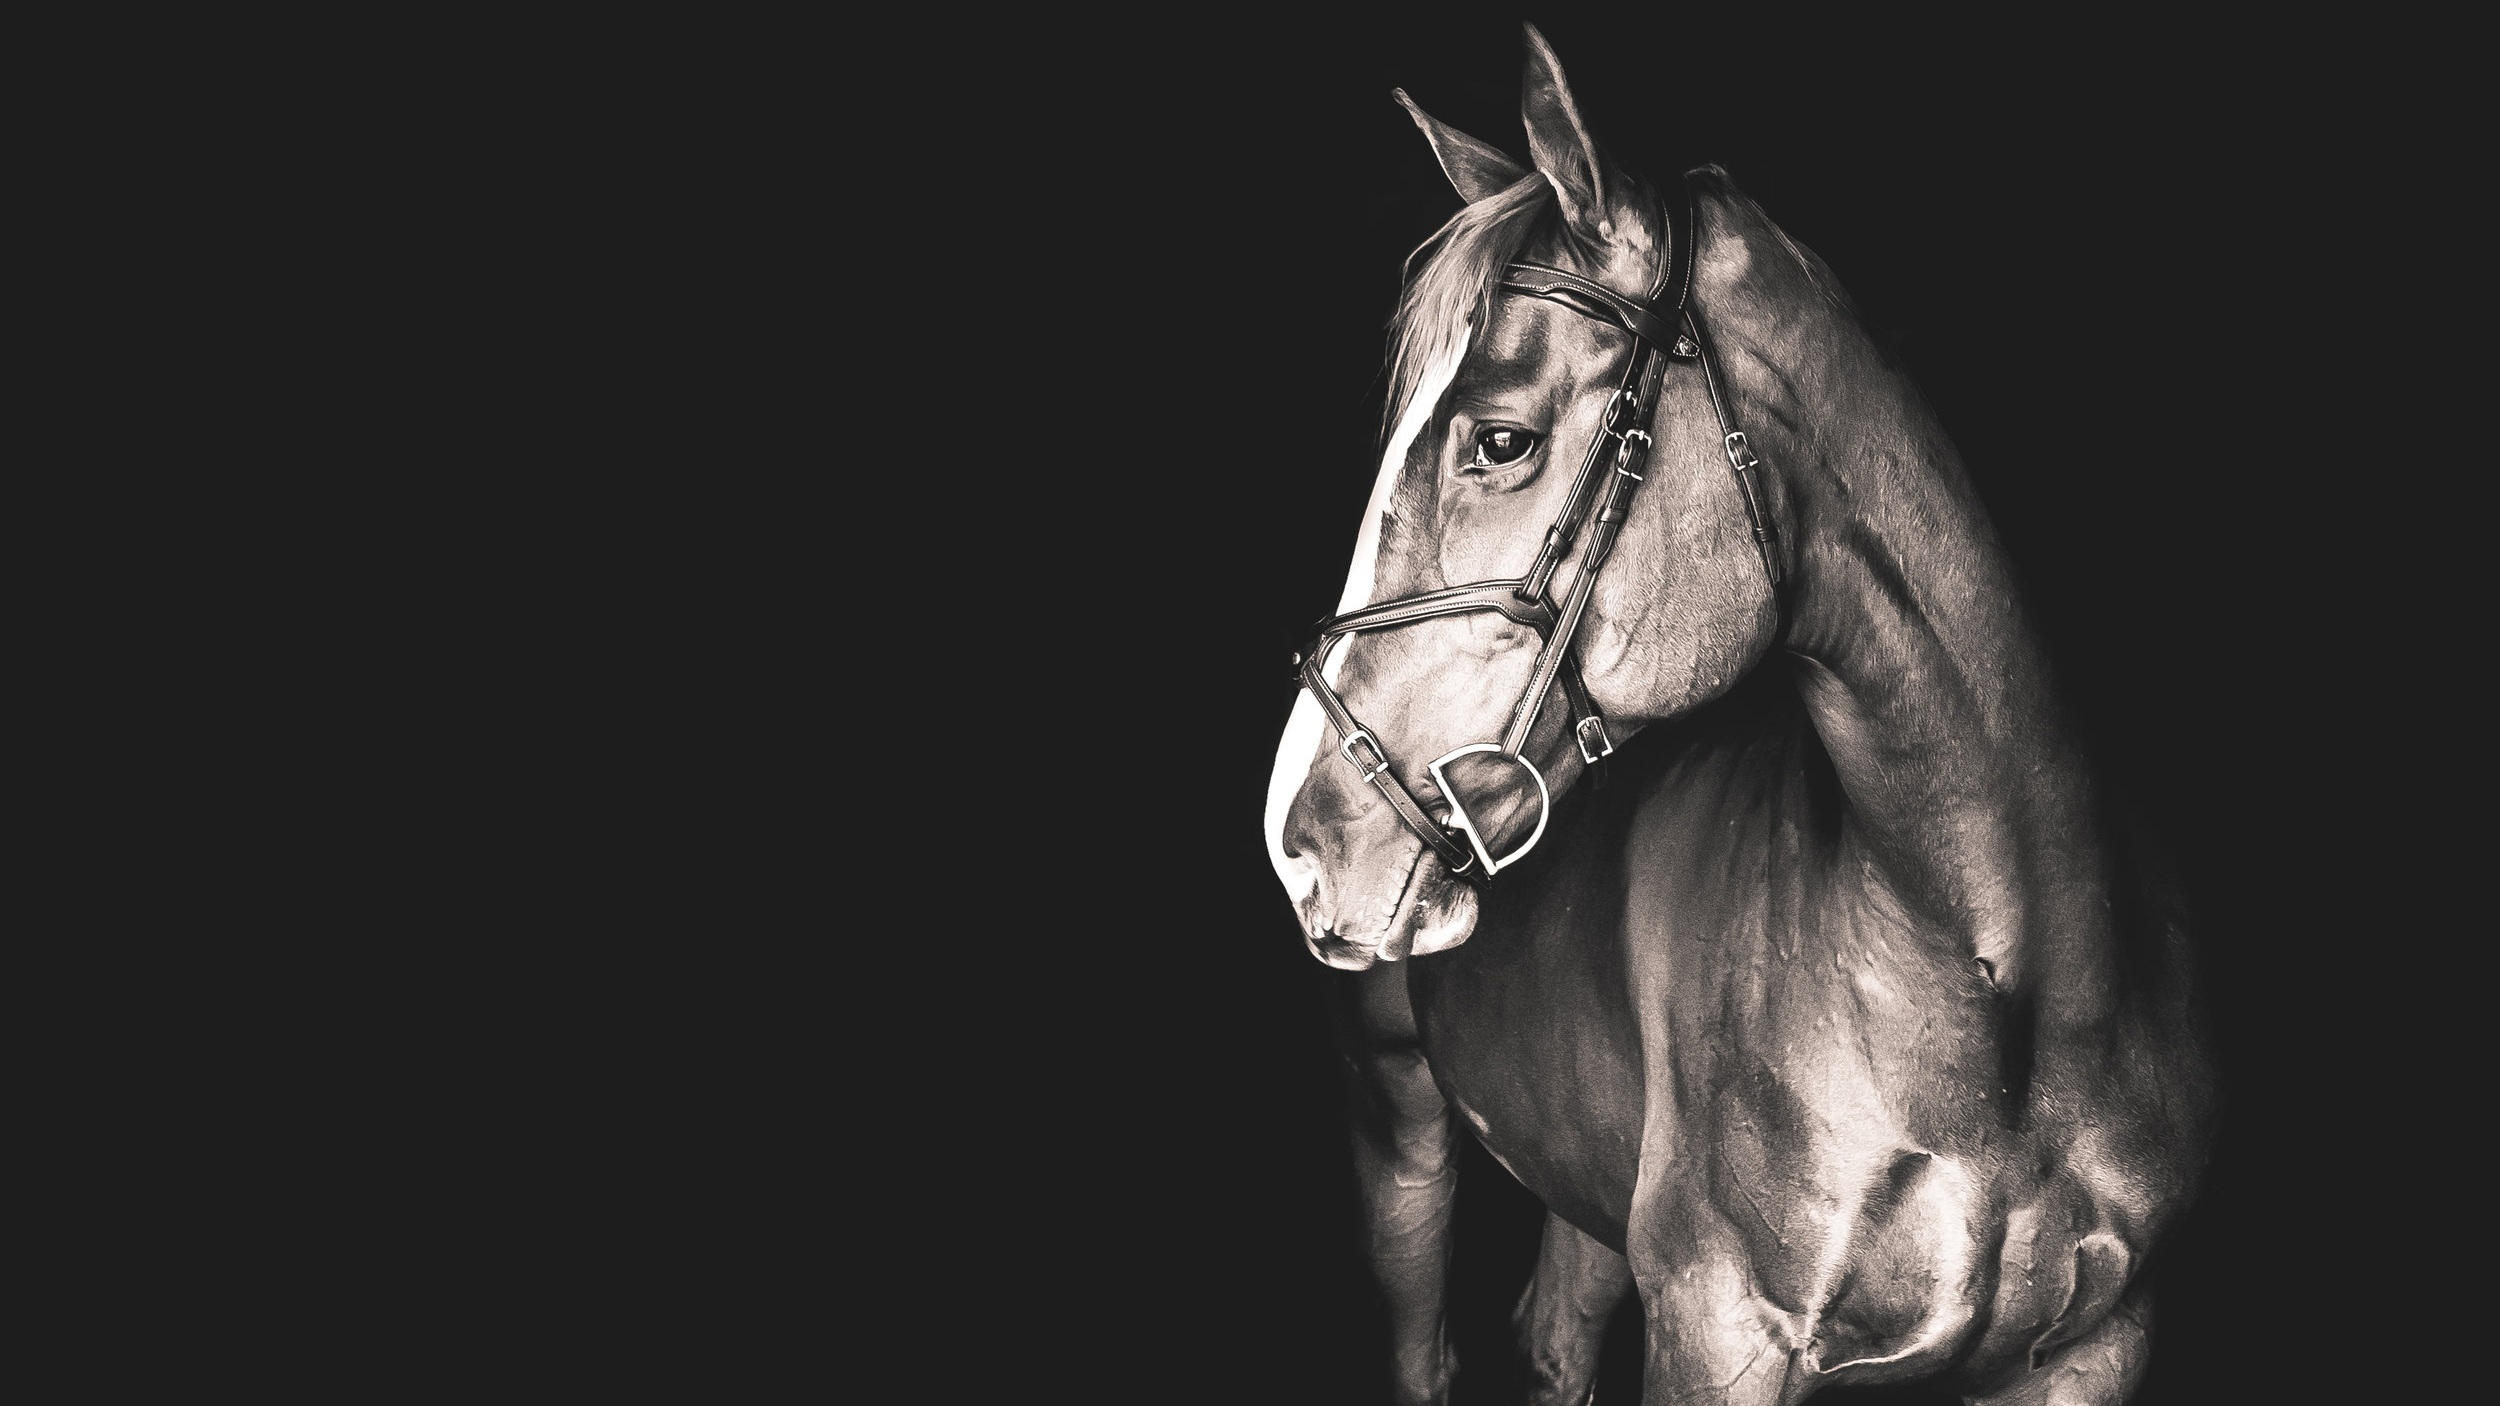 HORSE+PHOTOGRAPHY